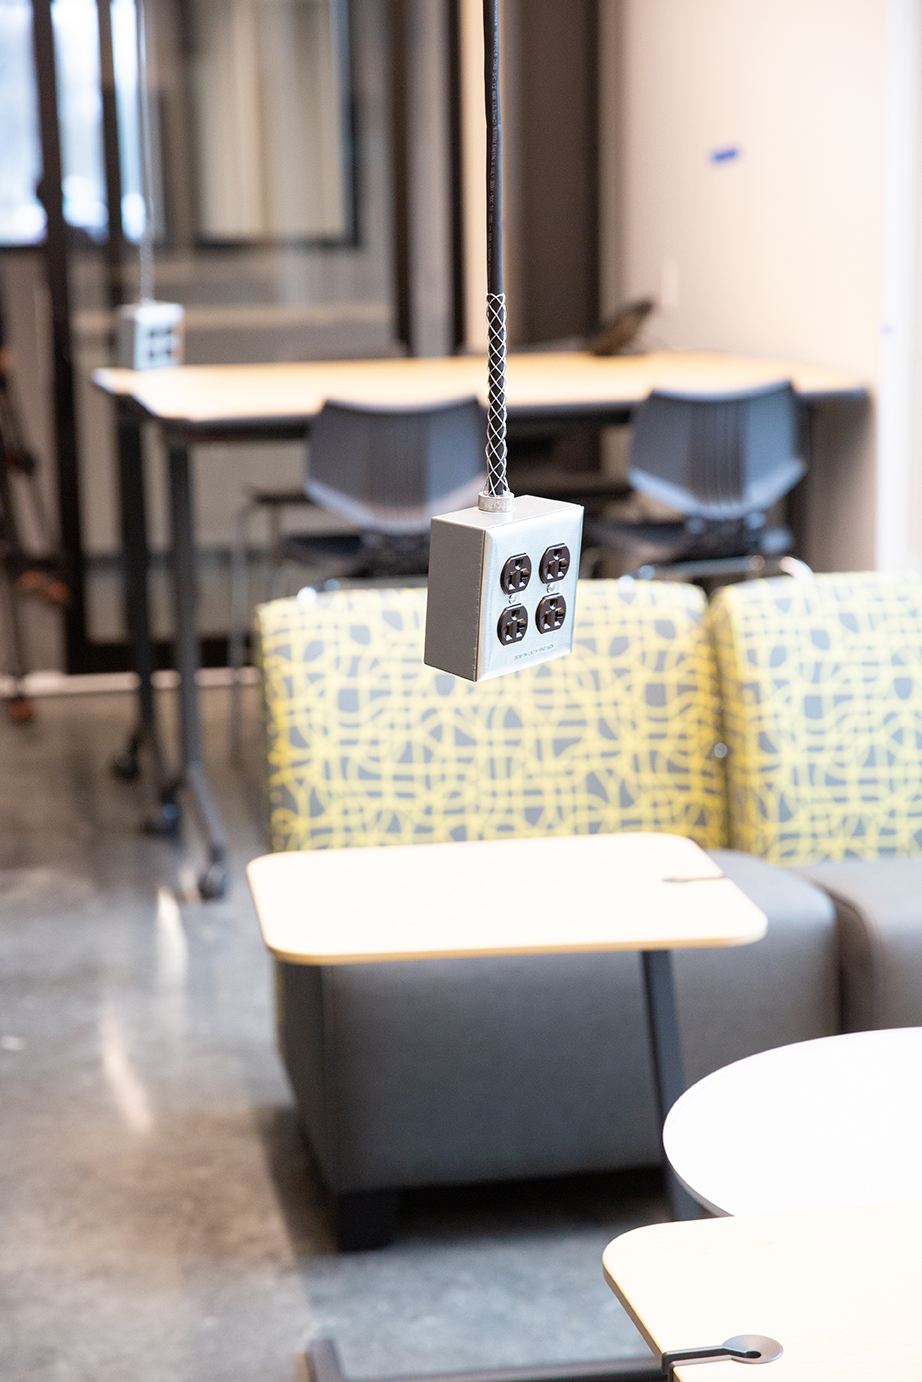 Small group workspace with suspended electrical outlets